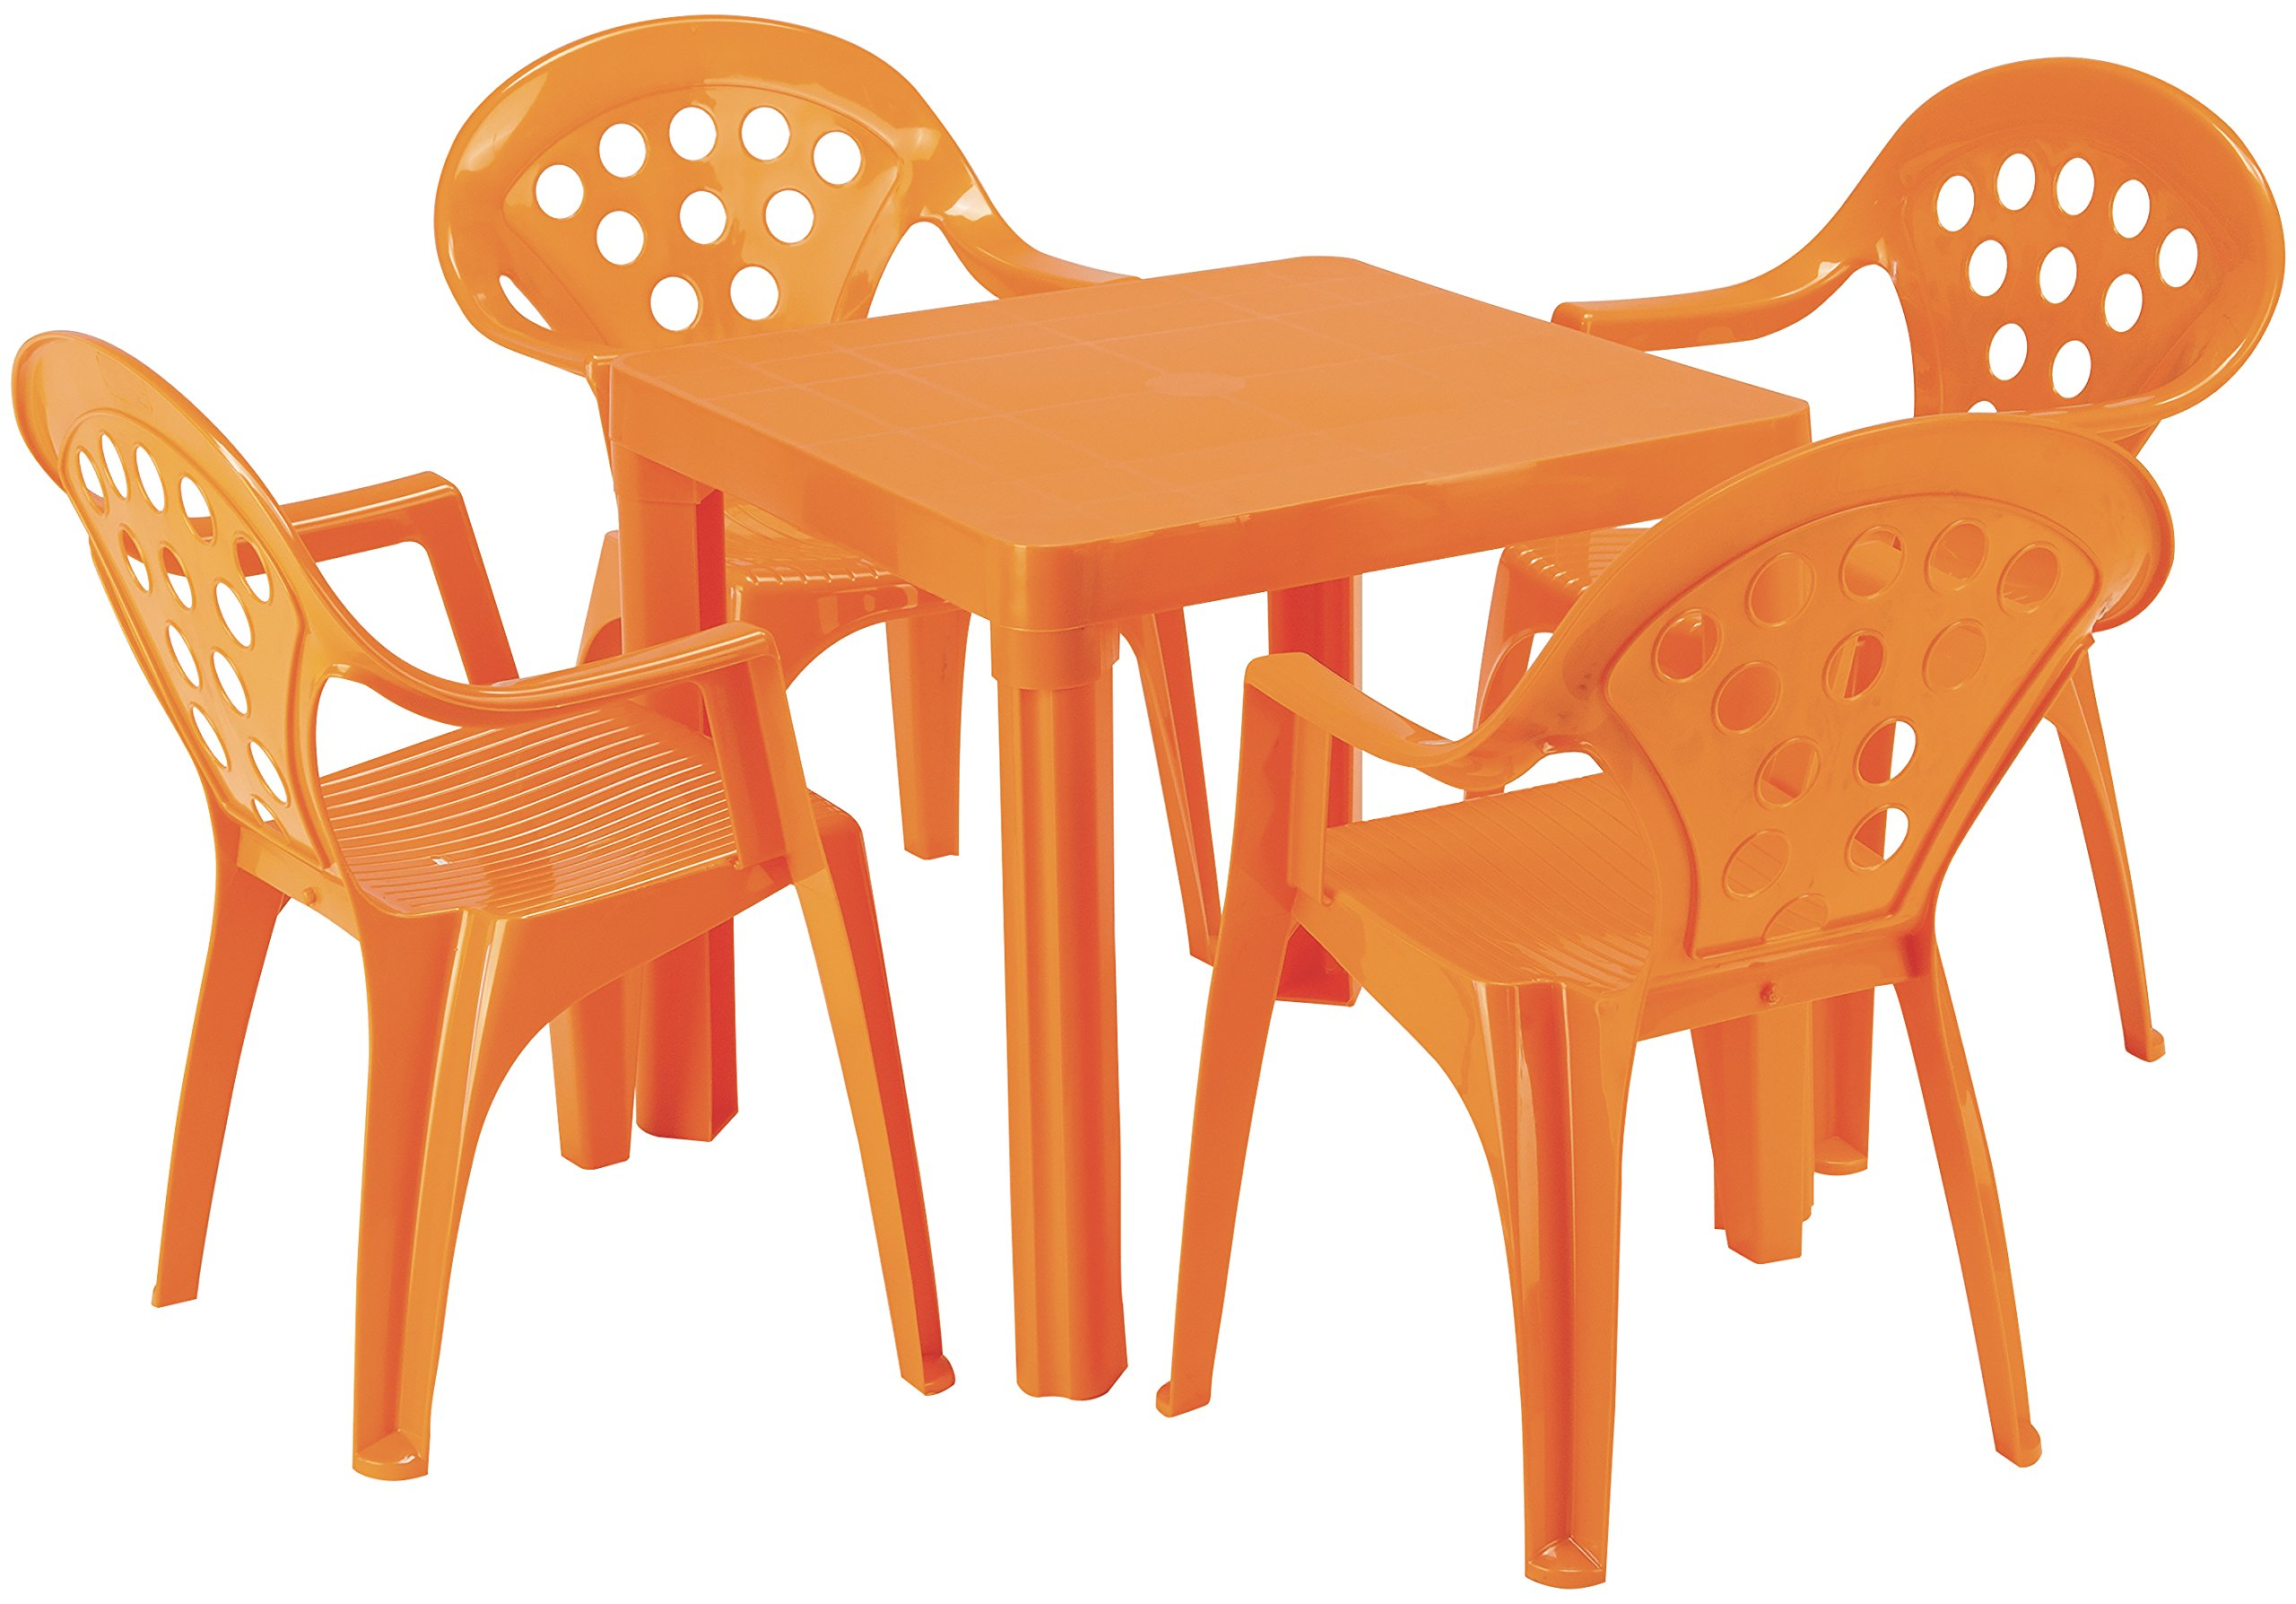 Baby Lulu Grand Soleil Children's Outdoor and Indoor Table and Chair Set - 4 Chairs - Made in Italy to European Standards with PolyPure - (Orange)